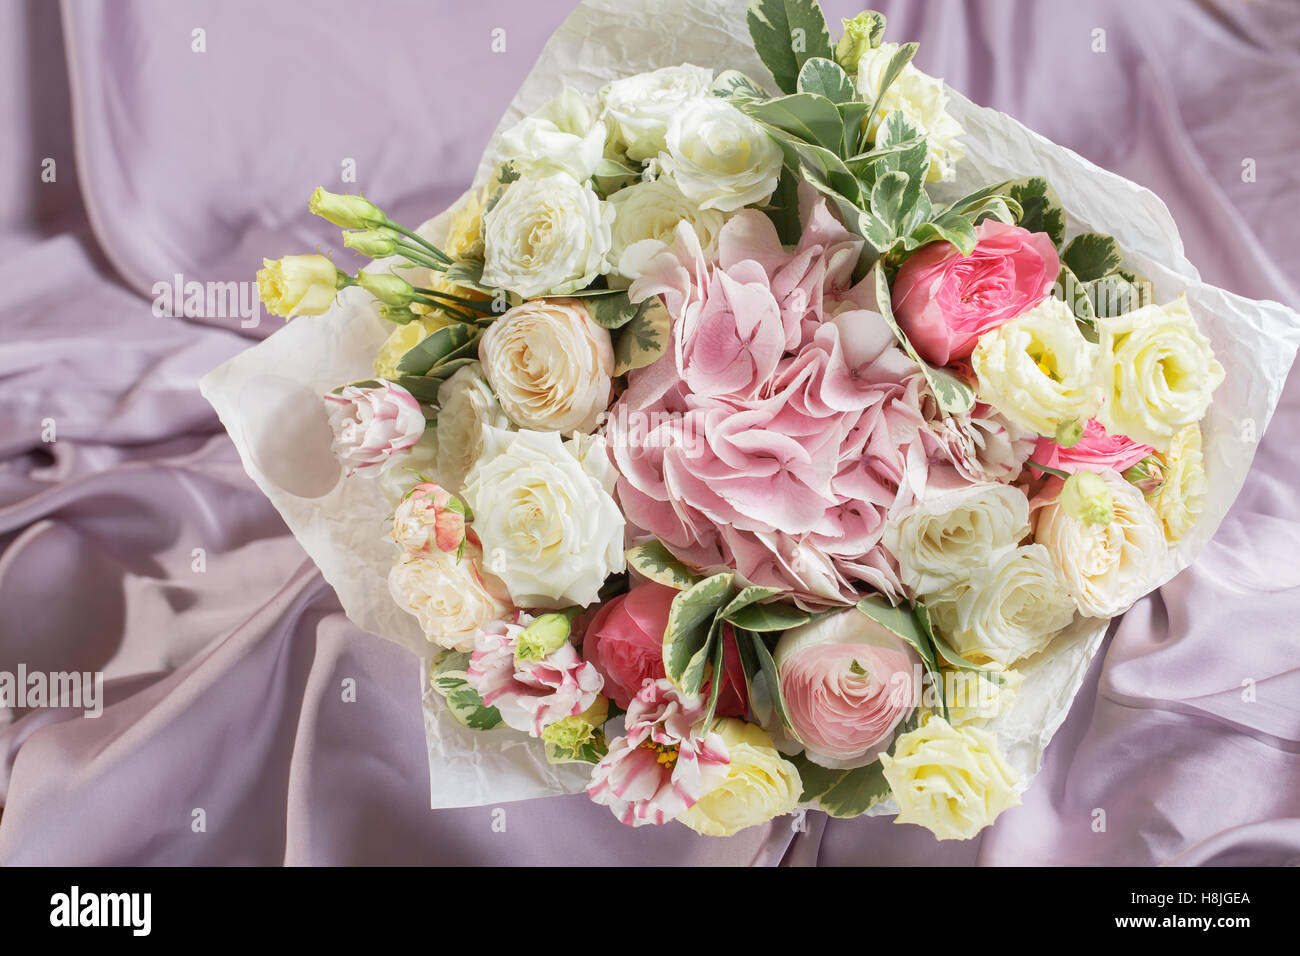 Beautiful bouquet made of different flowers colorful color mix beautiful bouquet made of different flowers colorful color mix flower on a table covered with cloth izmirmasajfo Gallery